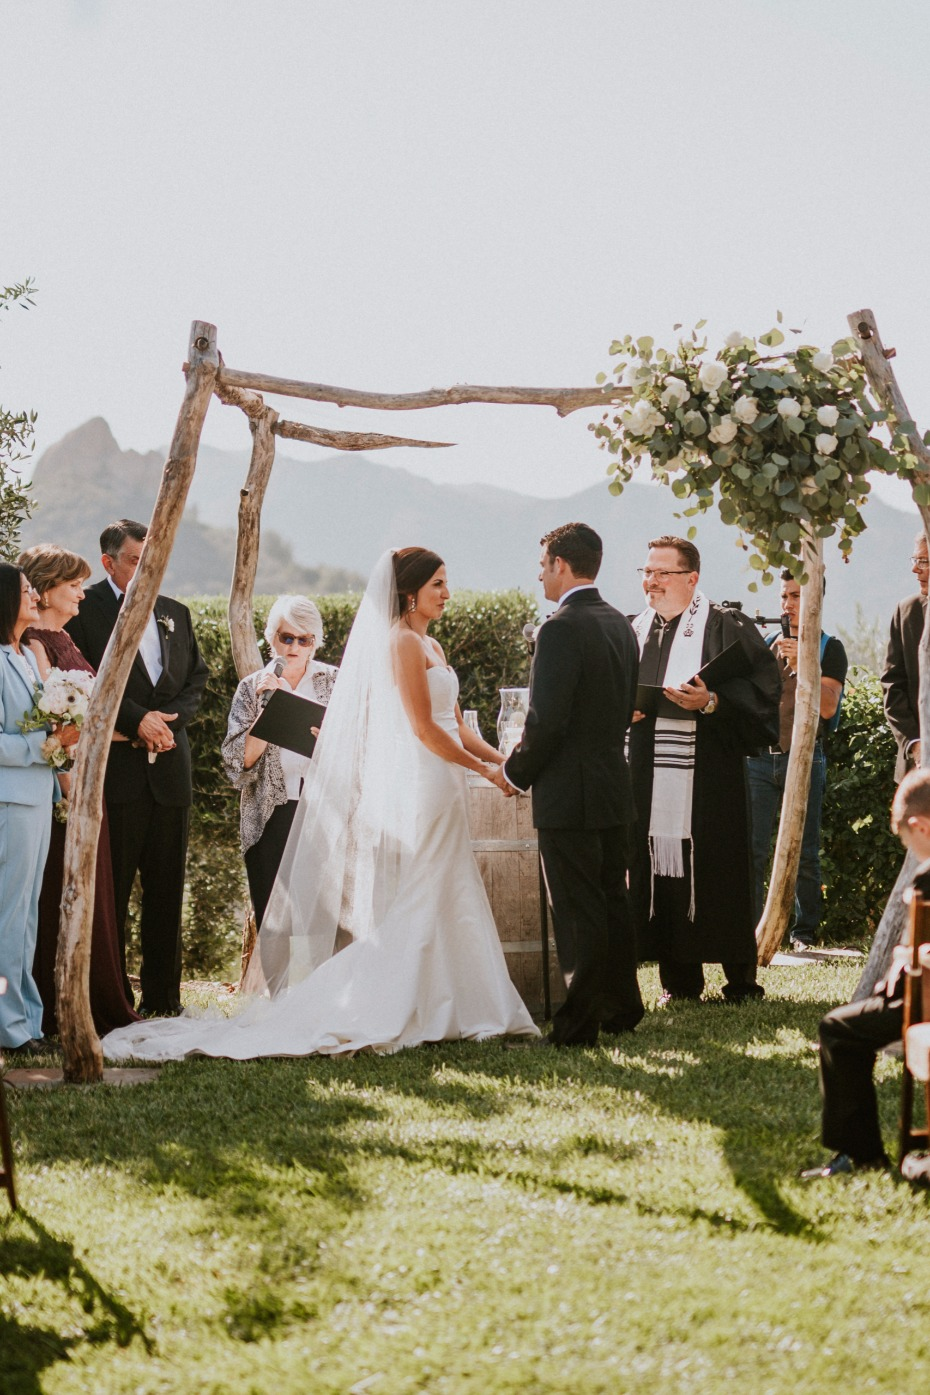 Outdoor ceremony in Malibu